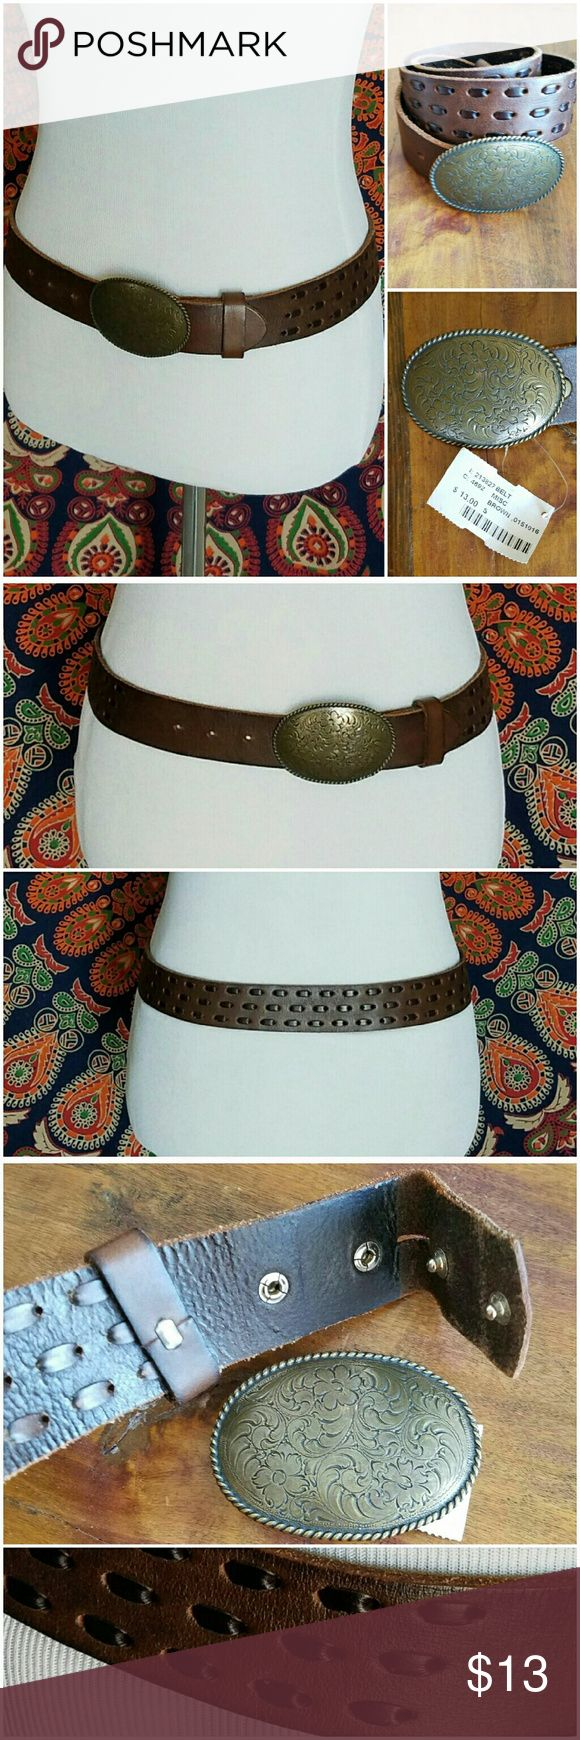 Detachable Embossed Buckle Brown Leather Belt Dark brown leather belt with darker bands of leather woven through. Snap buttons for buckle. Floral embossed oval shaped buckle included. 5 pre-punched holes on tongue adjust from approximately 30 to 34 inches. NWT. MEASUREMENTS with Buckle - 37.5 inches long x 1.5 inches wide. 35 inches long without buckle. Buckle 3in long x 2.25in wide. MATERIAL- Genuine Leather. Accessories Belts